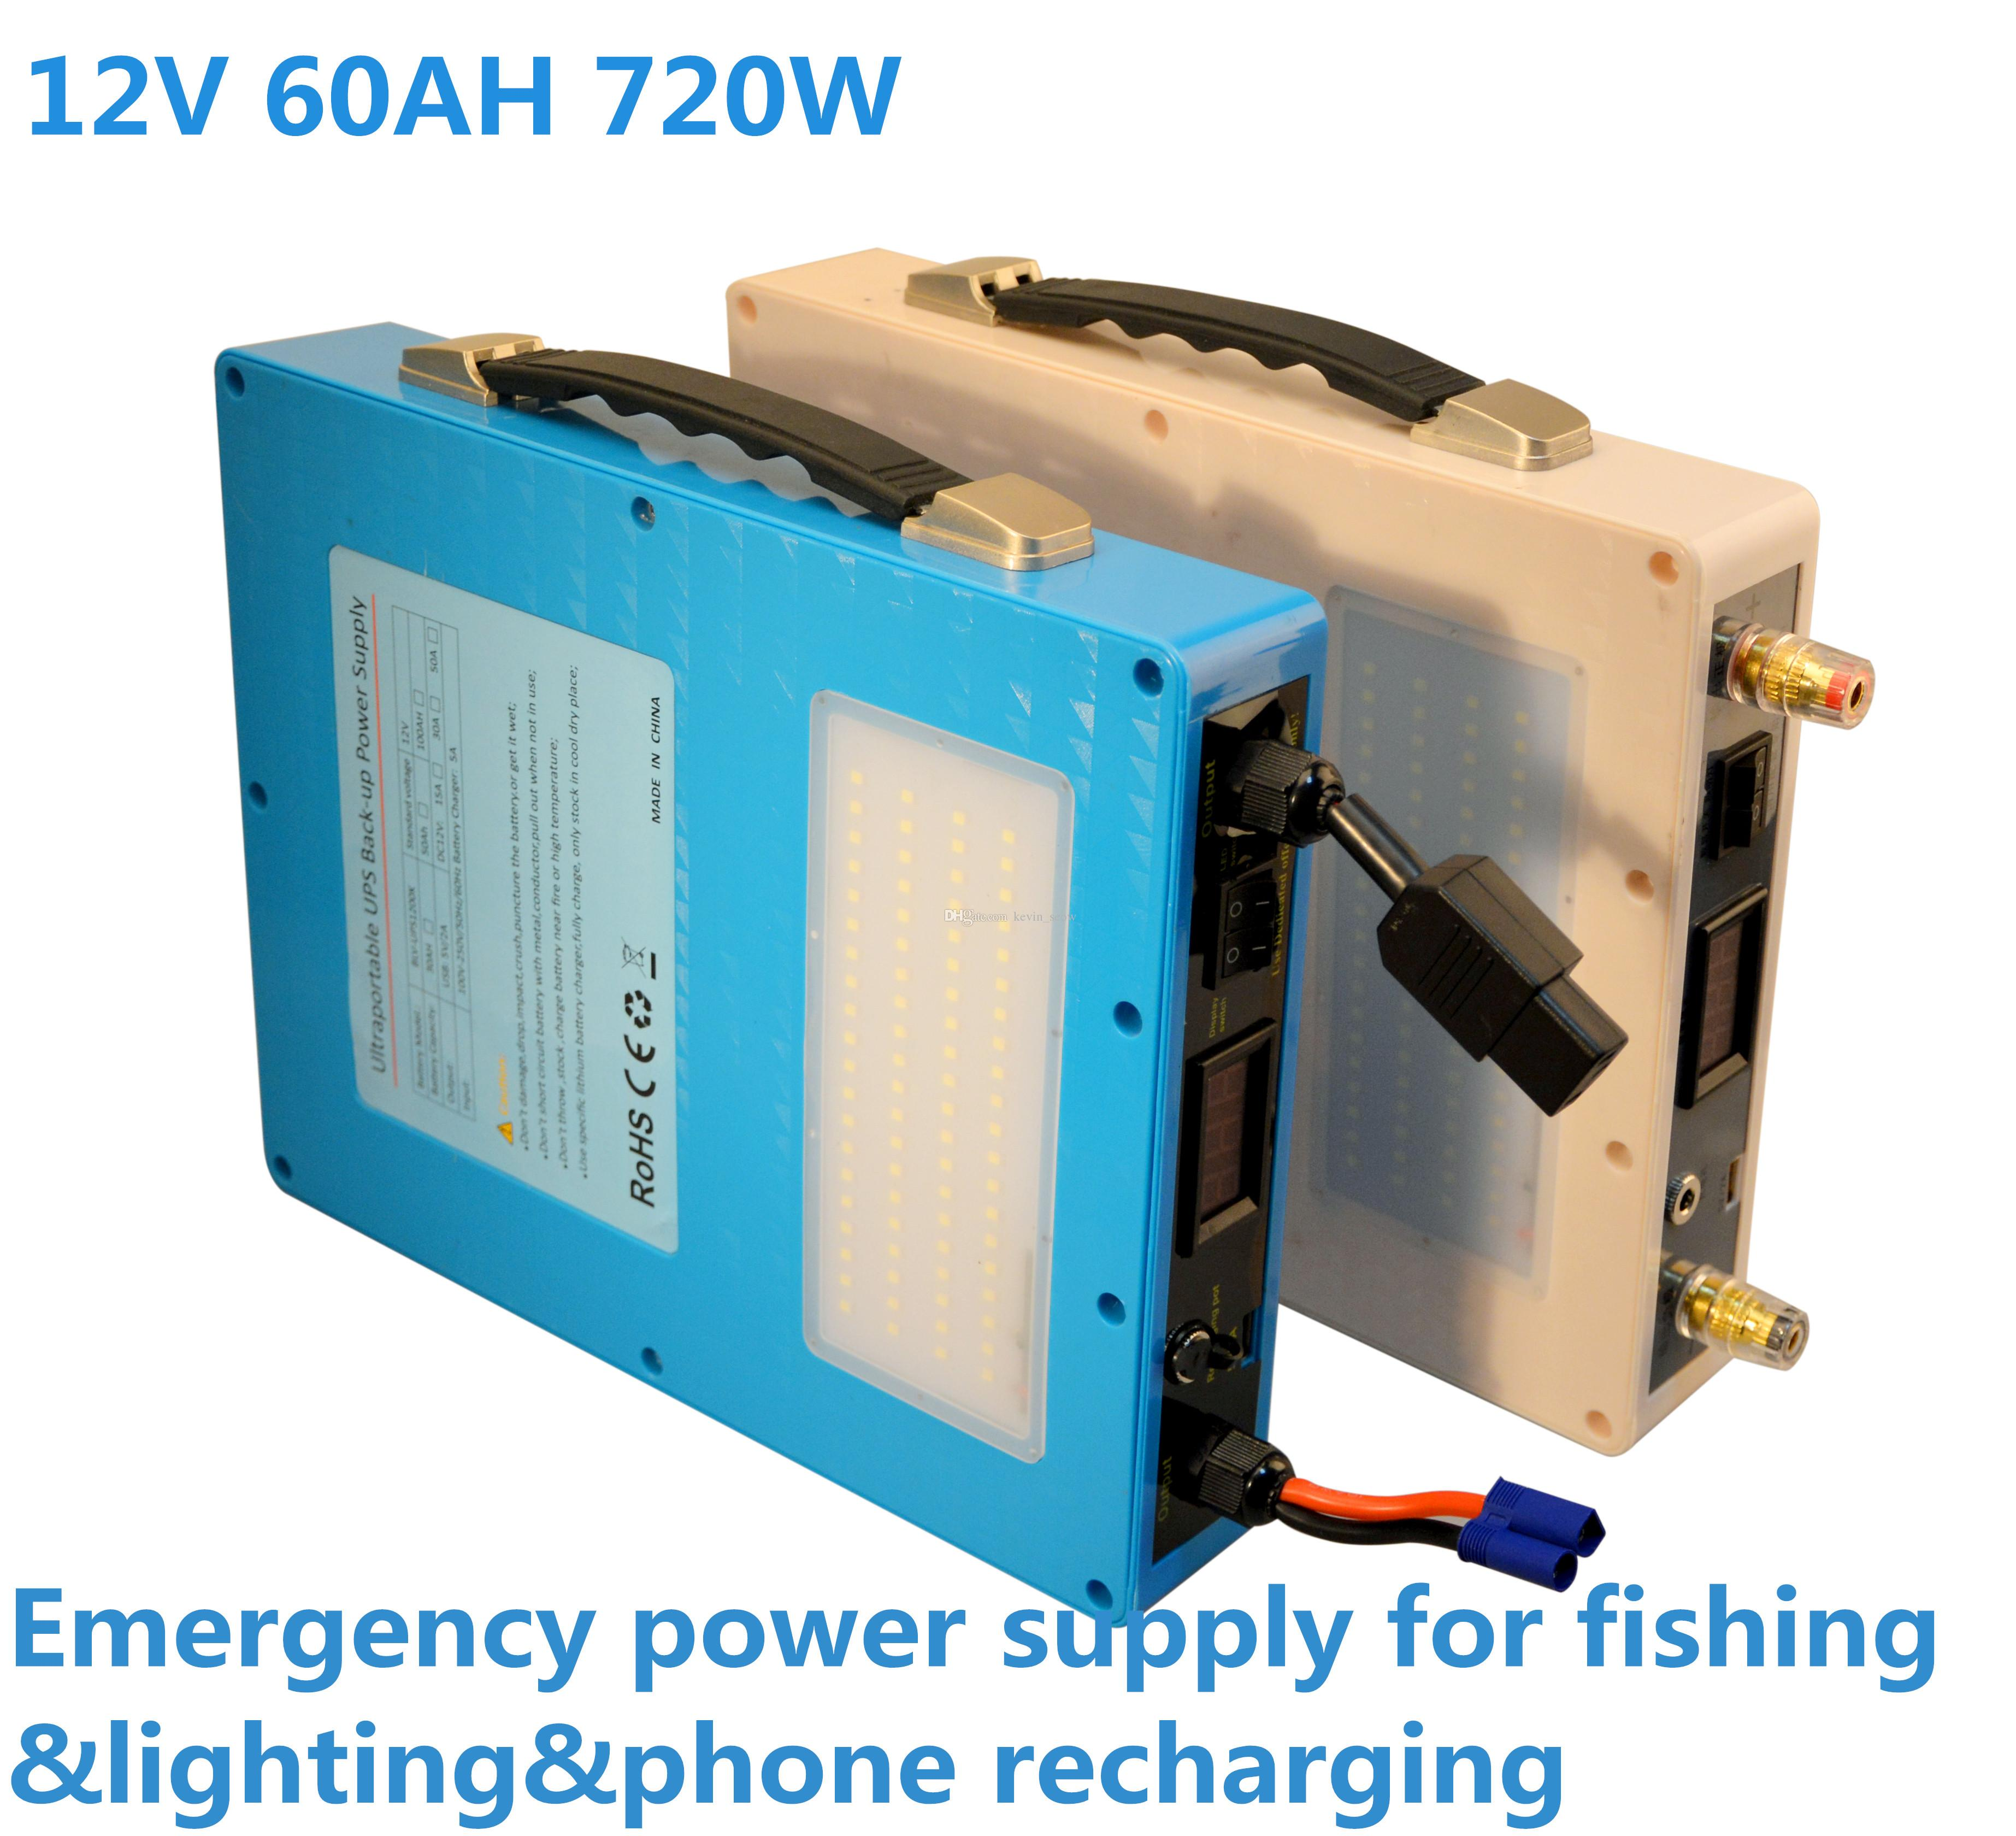 5v Power Bank With 37v Liion Battery Circuit Technolgie Charger For Li Ion Based Lp2951 12v 60ah 720w Lithium Pack